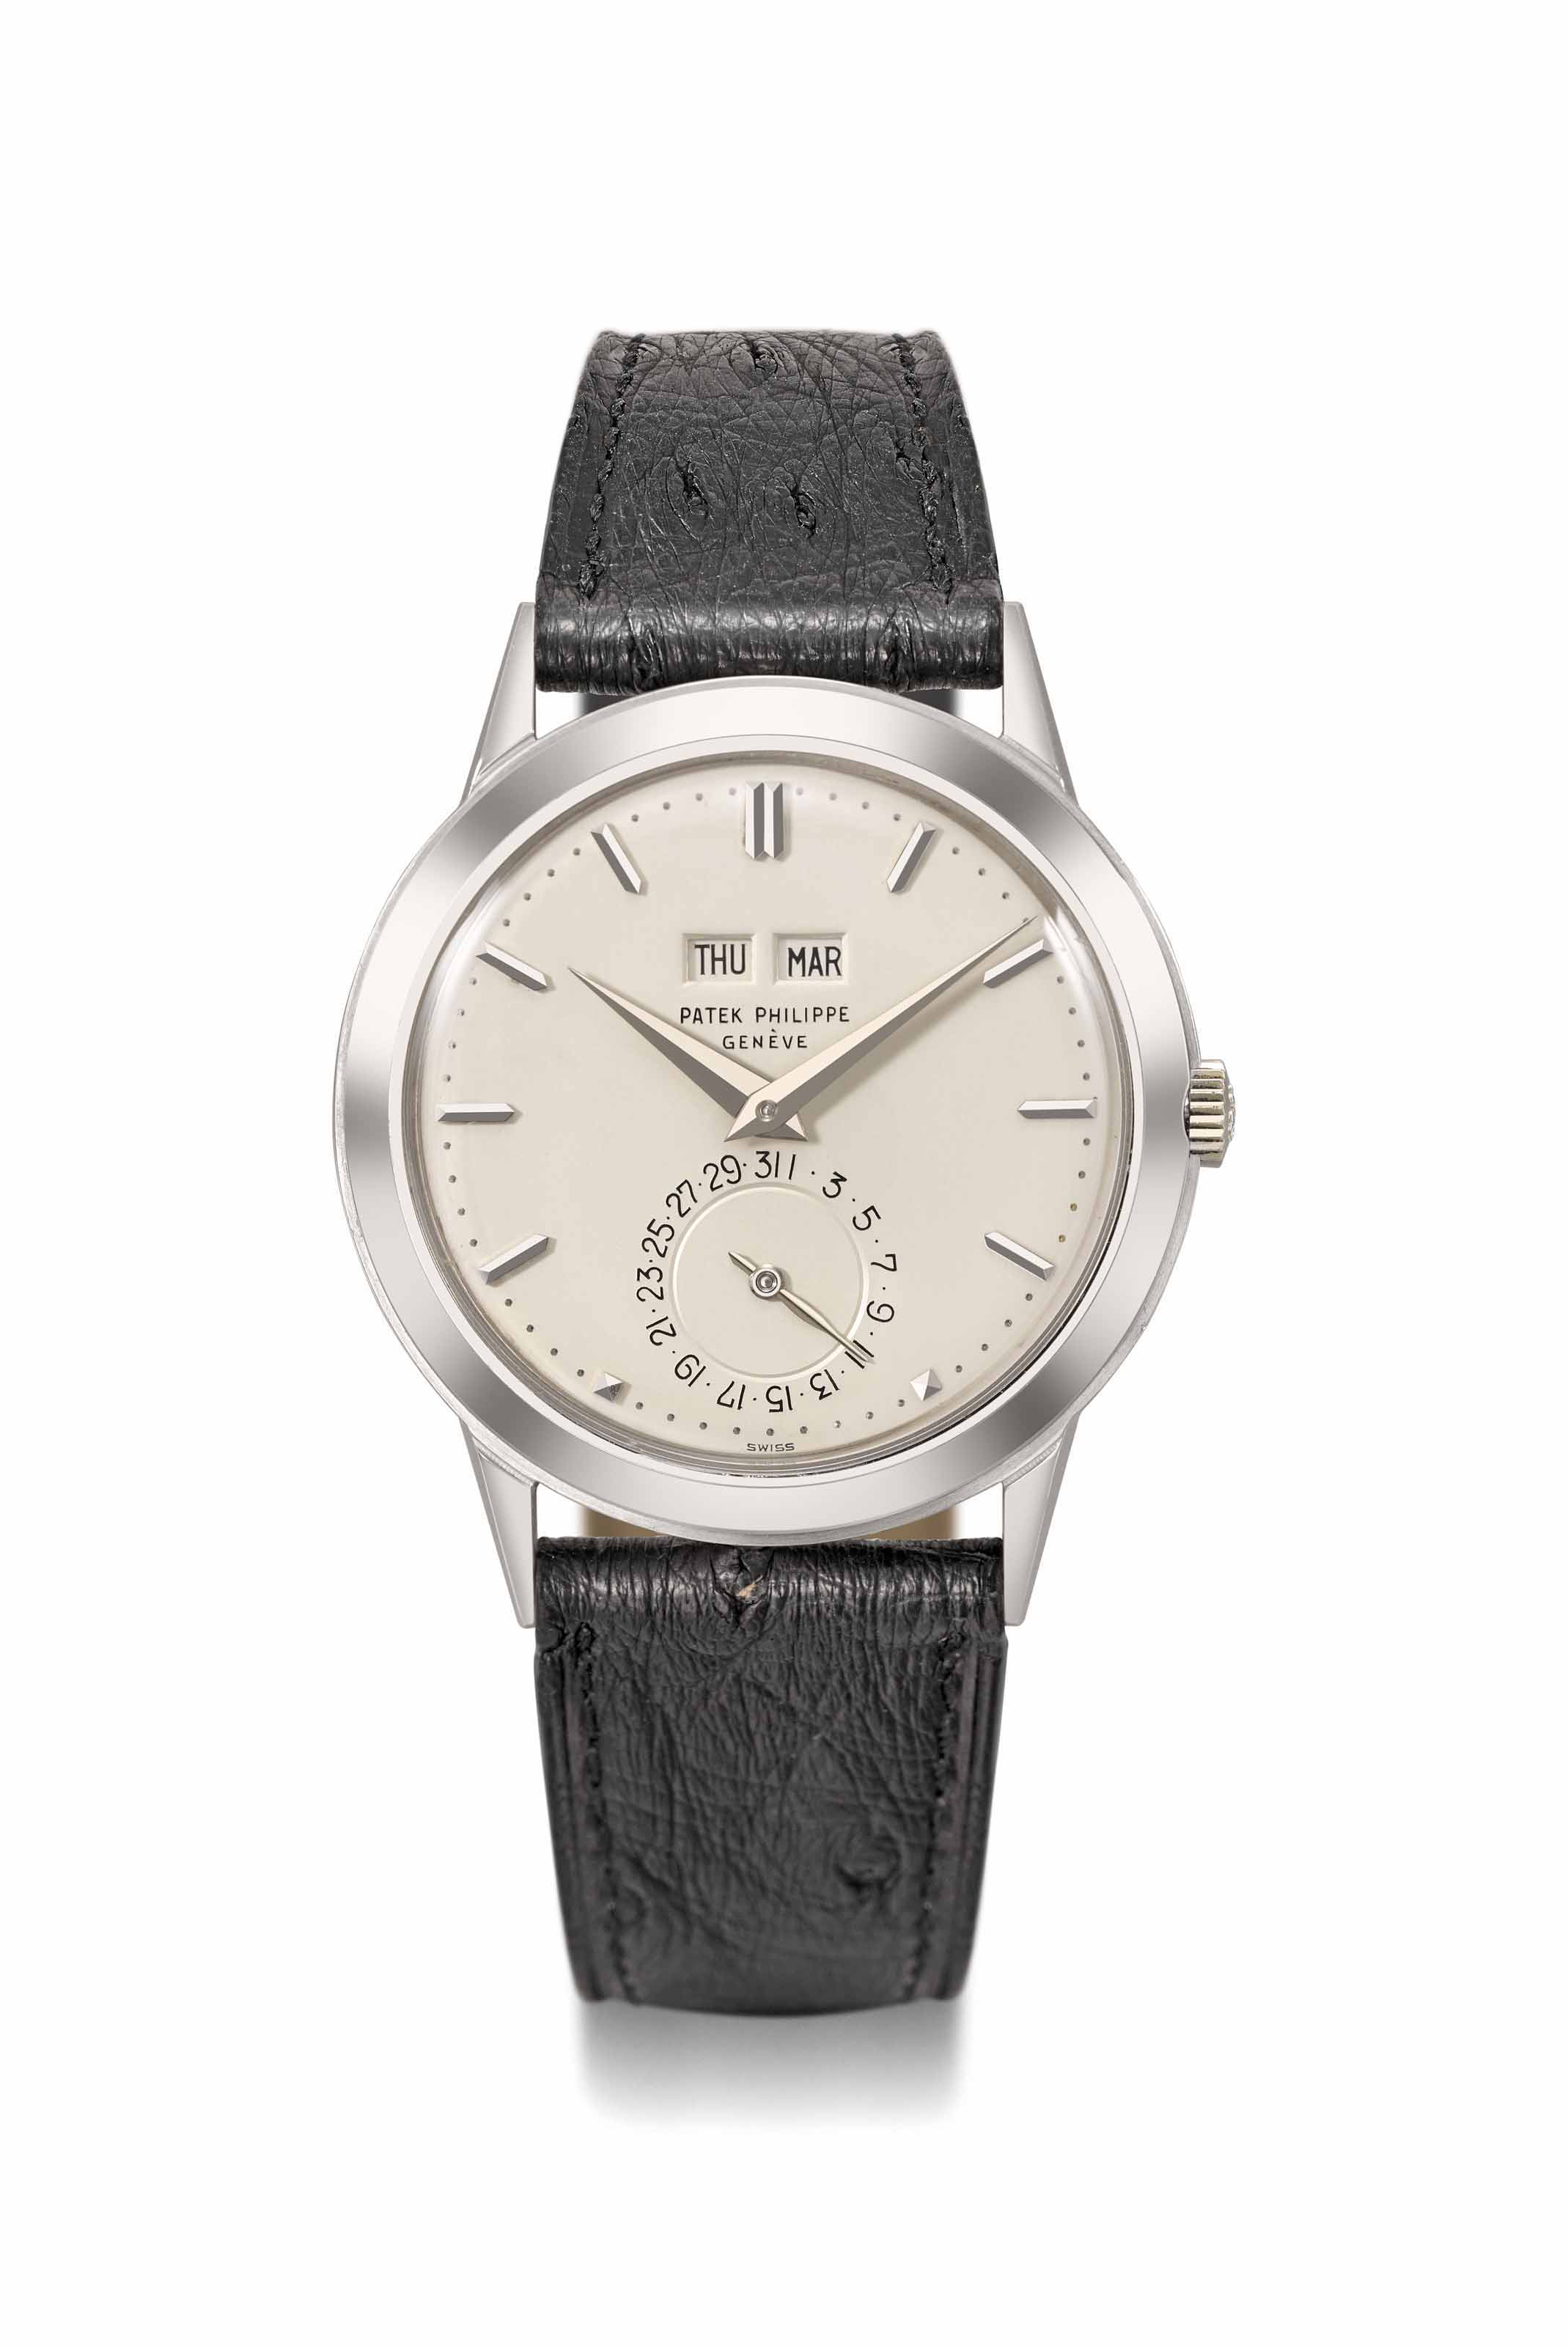 Patek Philippe. An exceptional and historically important 18K white gold automatic perpetual calendar wristwatch without moon phases